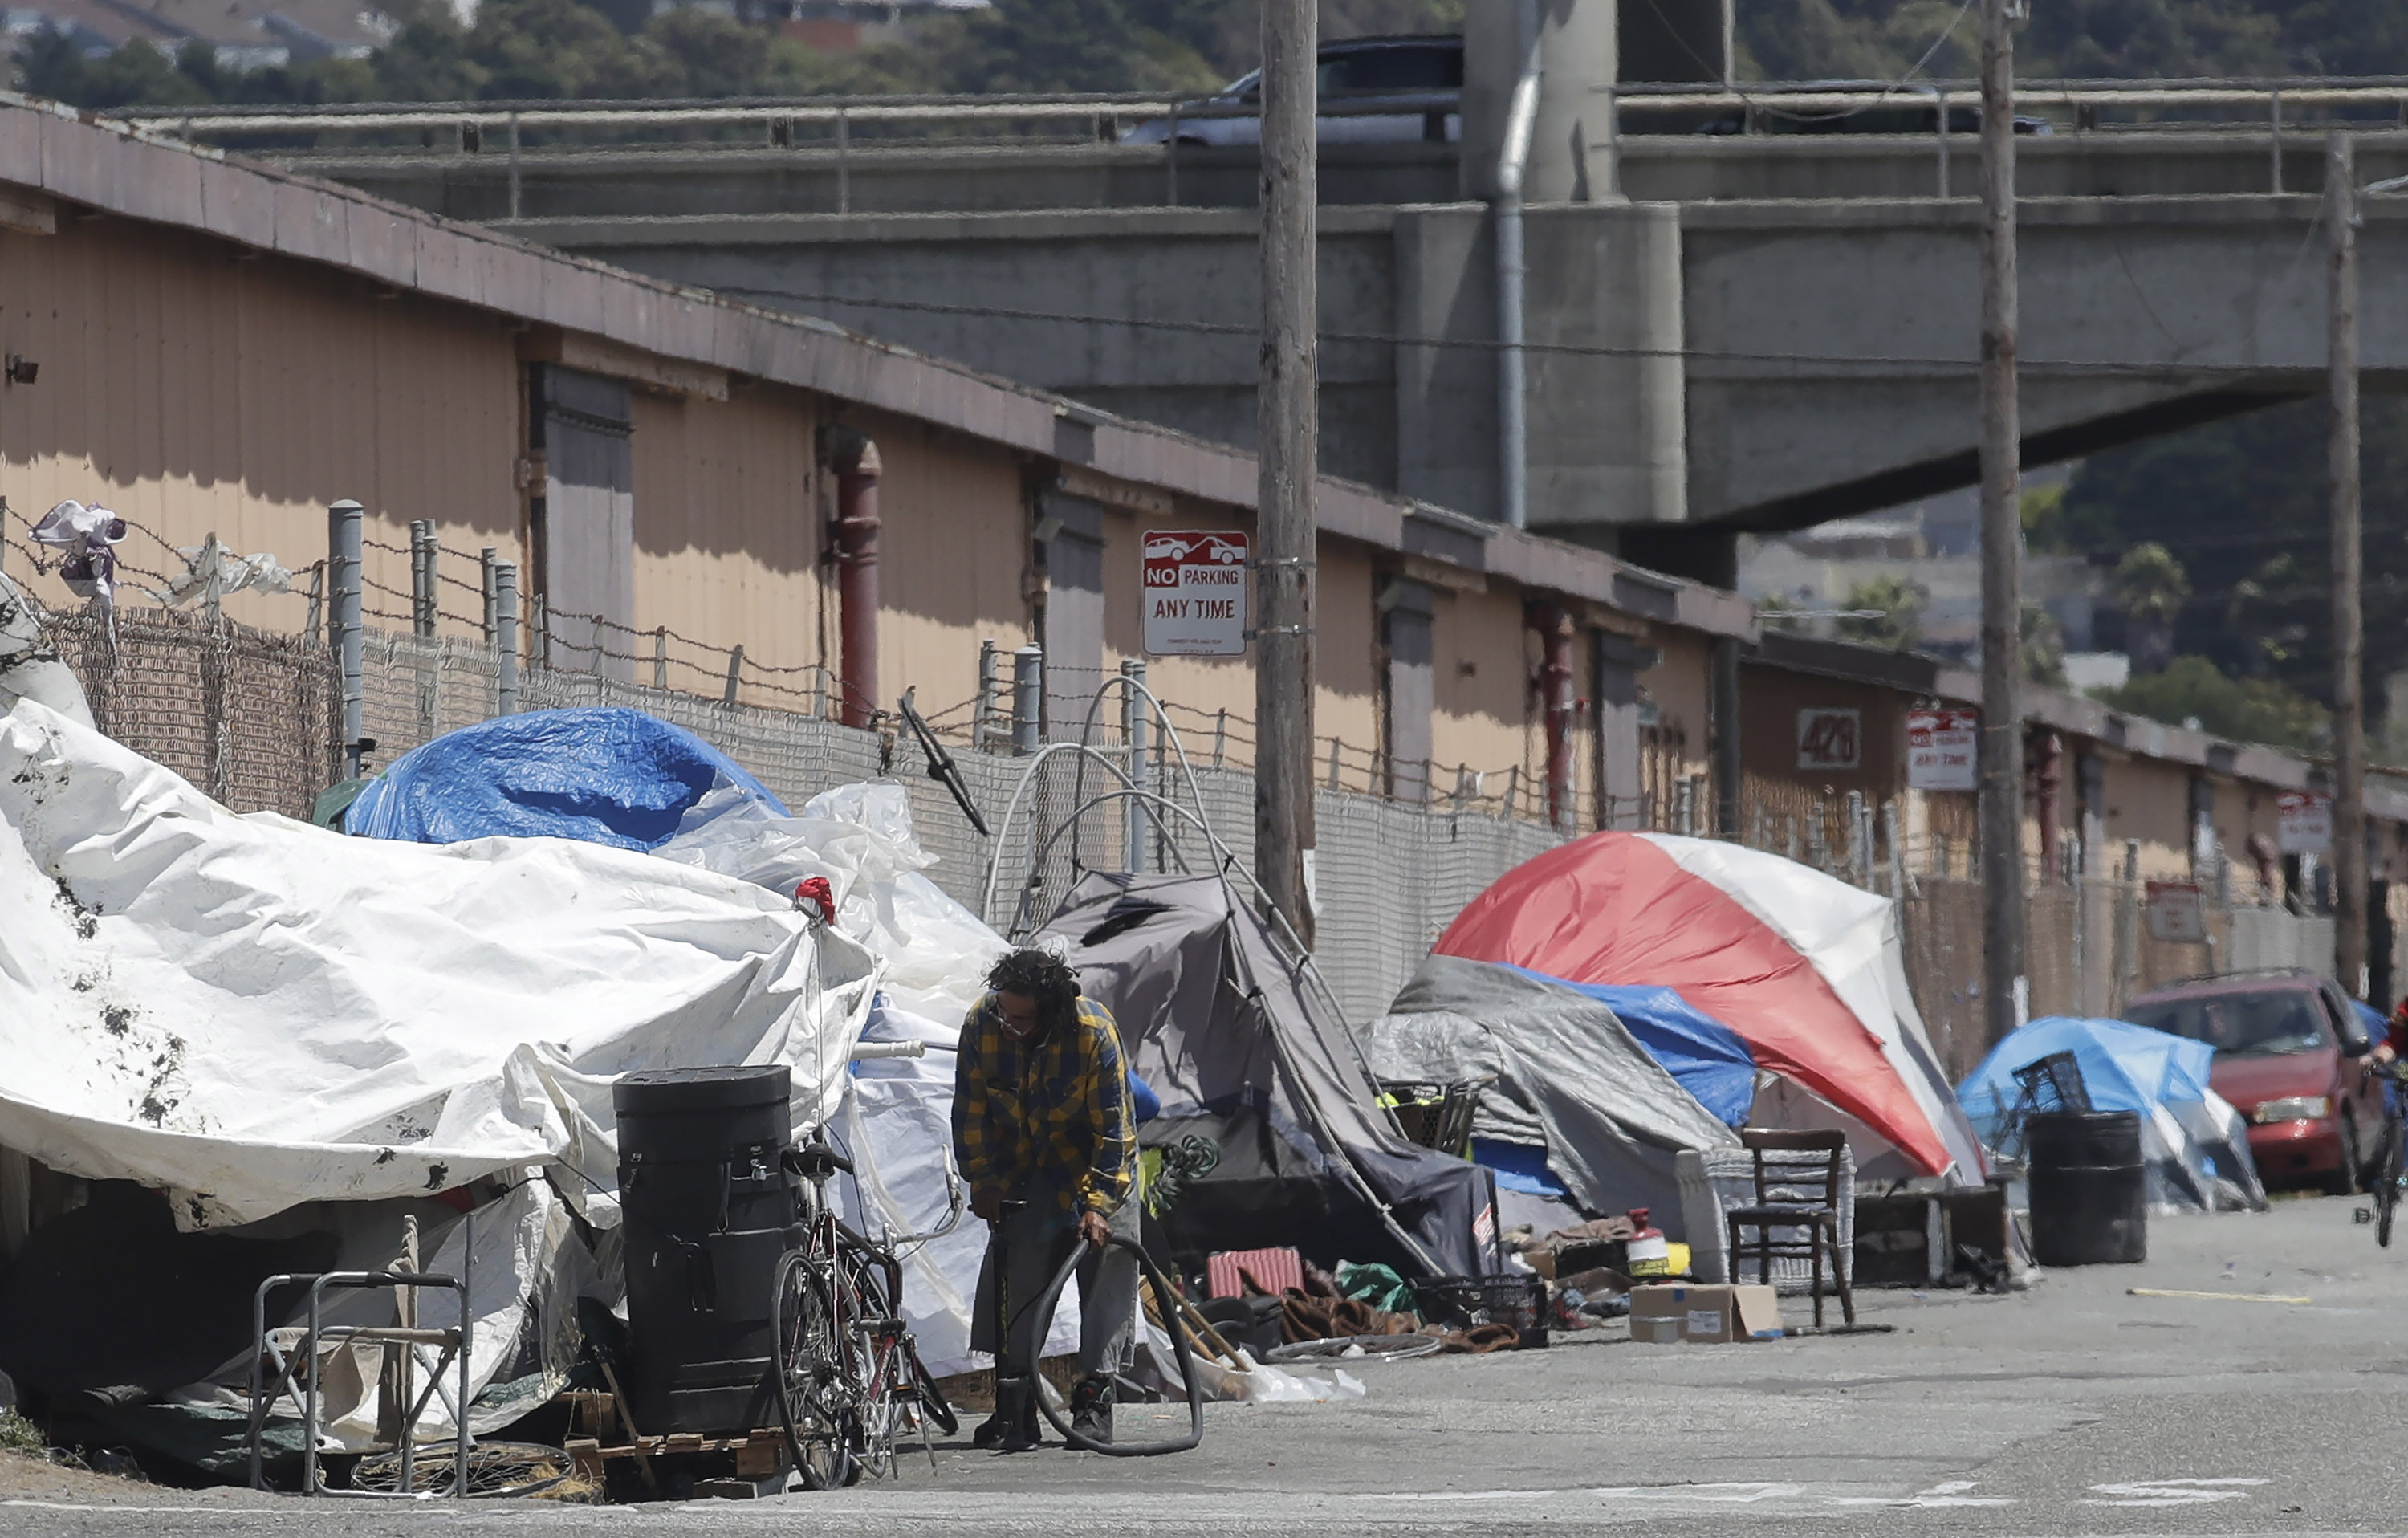 New San Francisco campaign aims to house 1,100 homeless